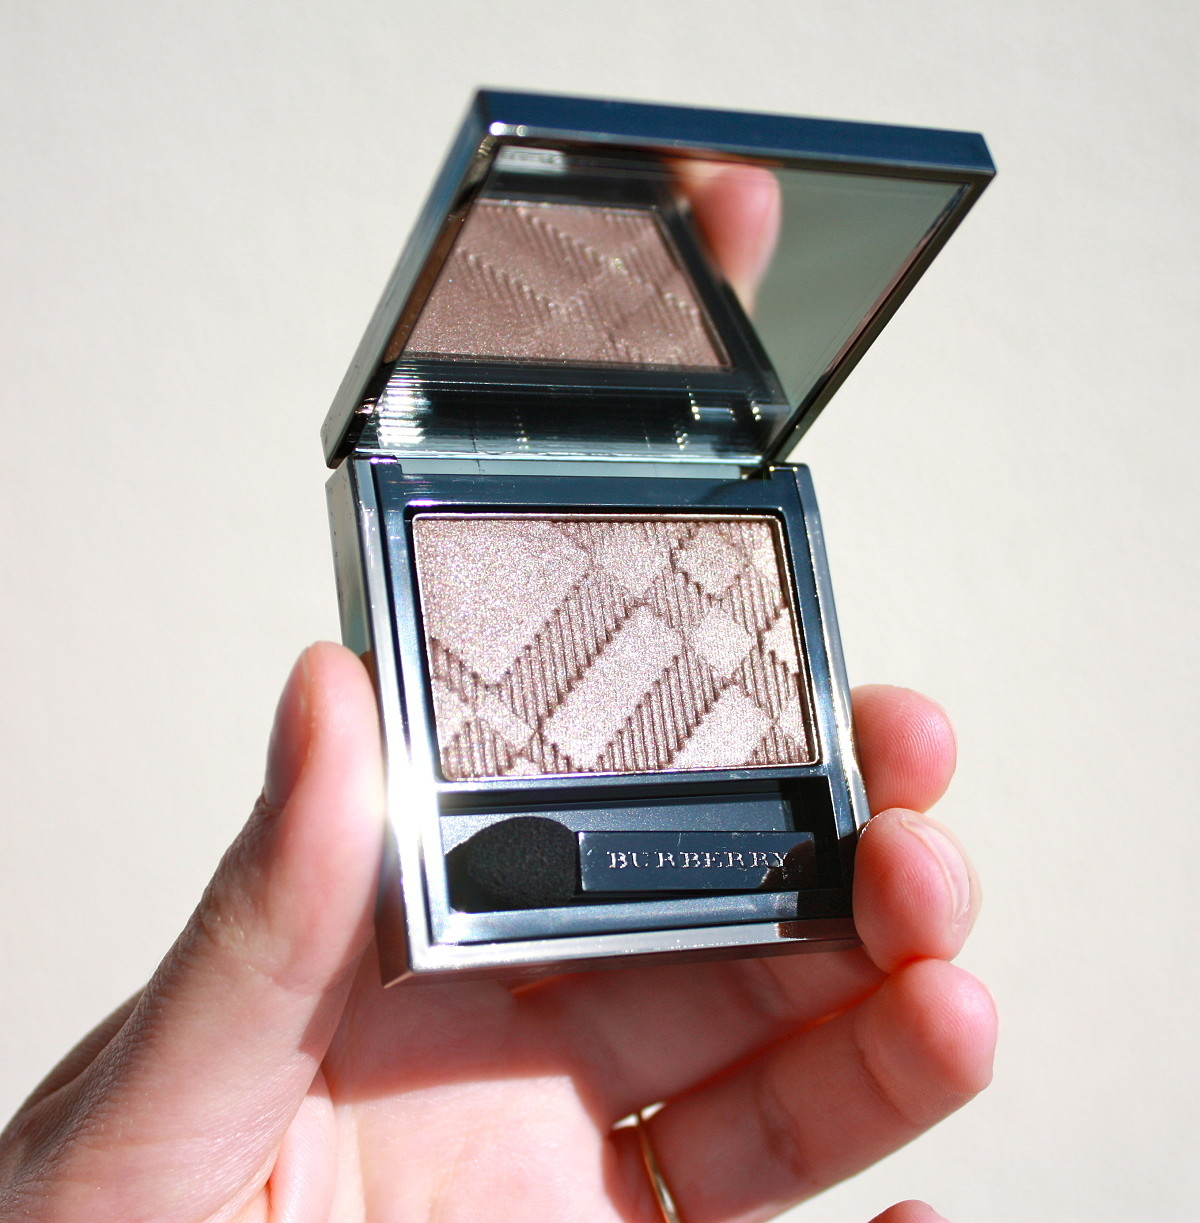 Burberry Eyeshadow Comparisons